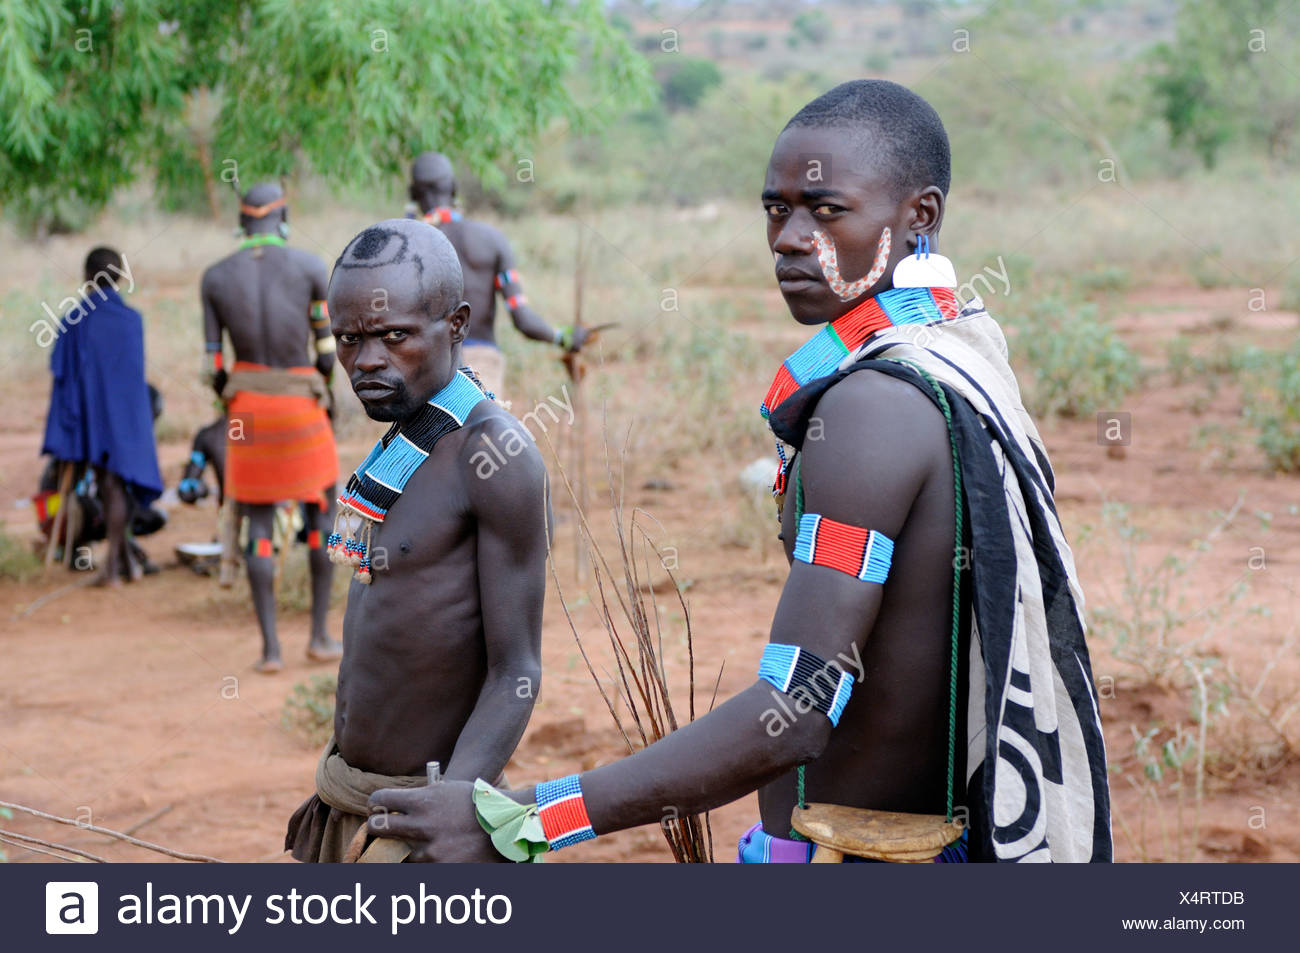 Fierce warriors from the Hamar tribe at the initiation ritual 'leap over the cattle', southern Omo valley, Ethiopia, Africa - Stock Image